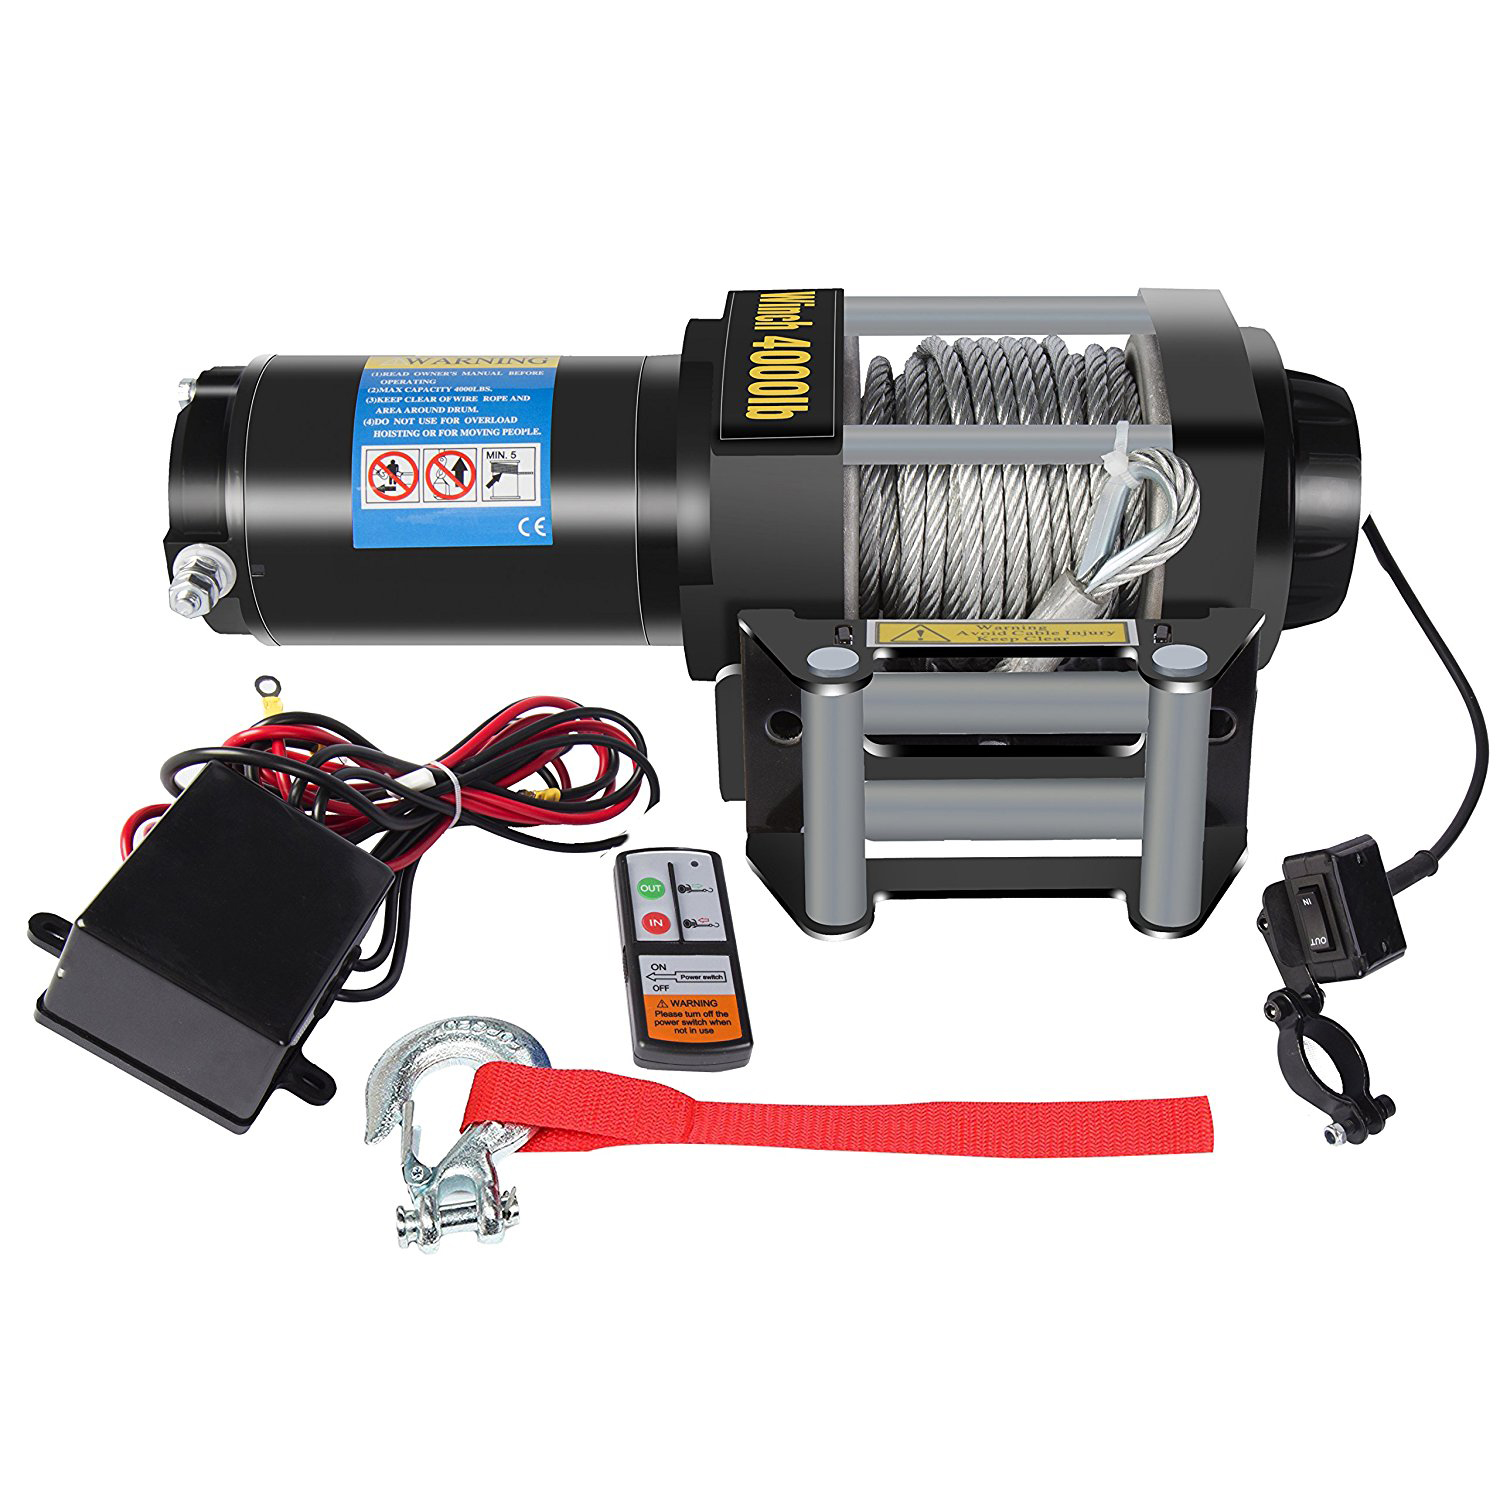 dcflat 12v 4000lbs wire rope electric winch for towing atv utv boat marine wiring diagram dcflat 12v 4000lbs wire rope electric winch for towing atv utv boat off road with mounting bracket wireless remote control walmart com